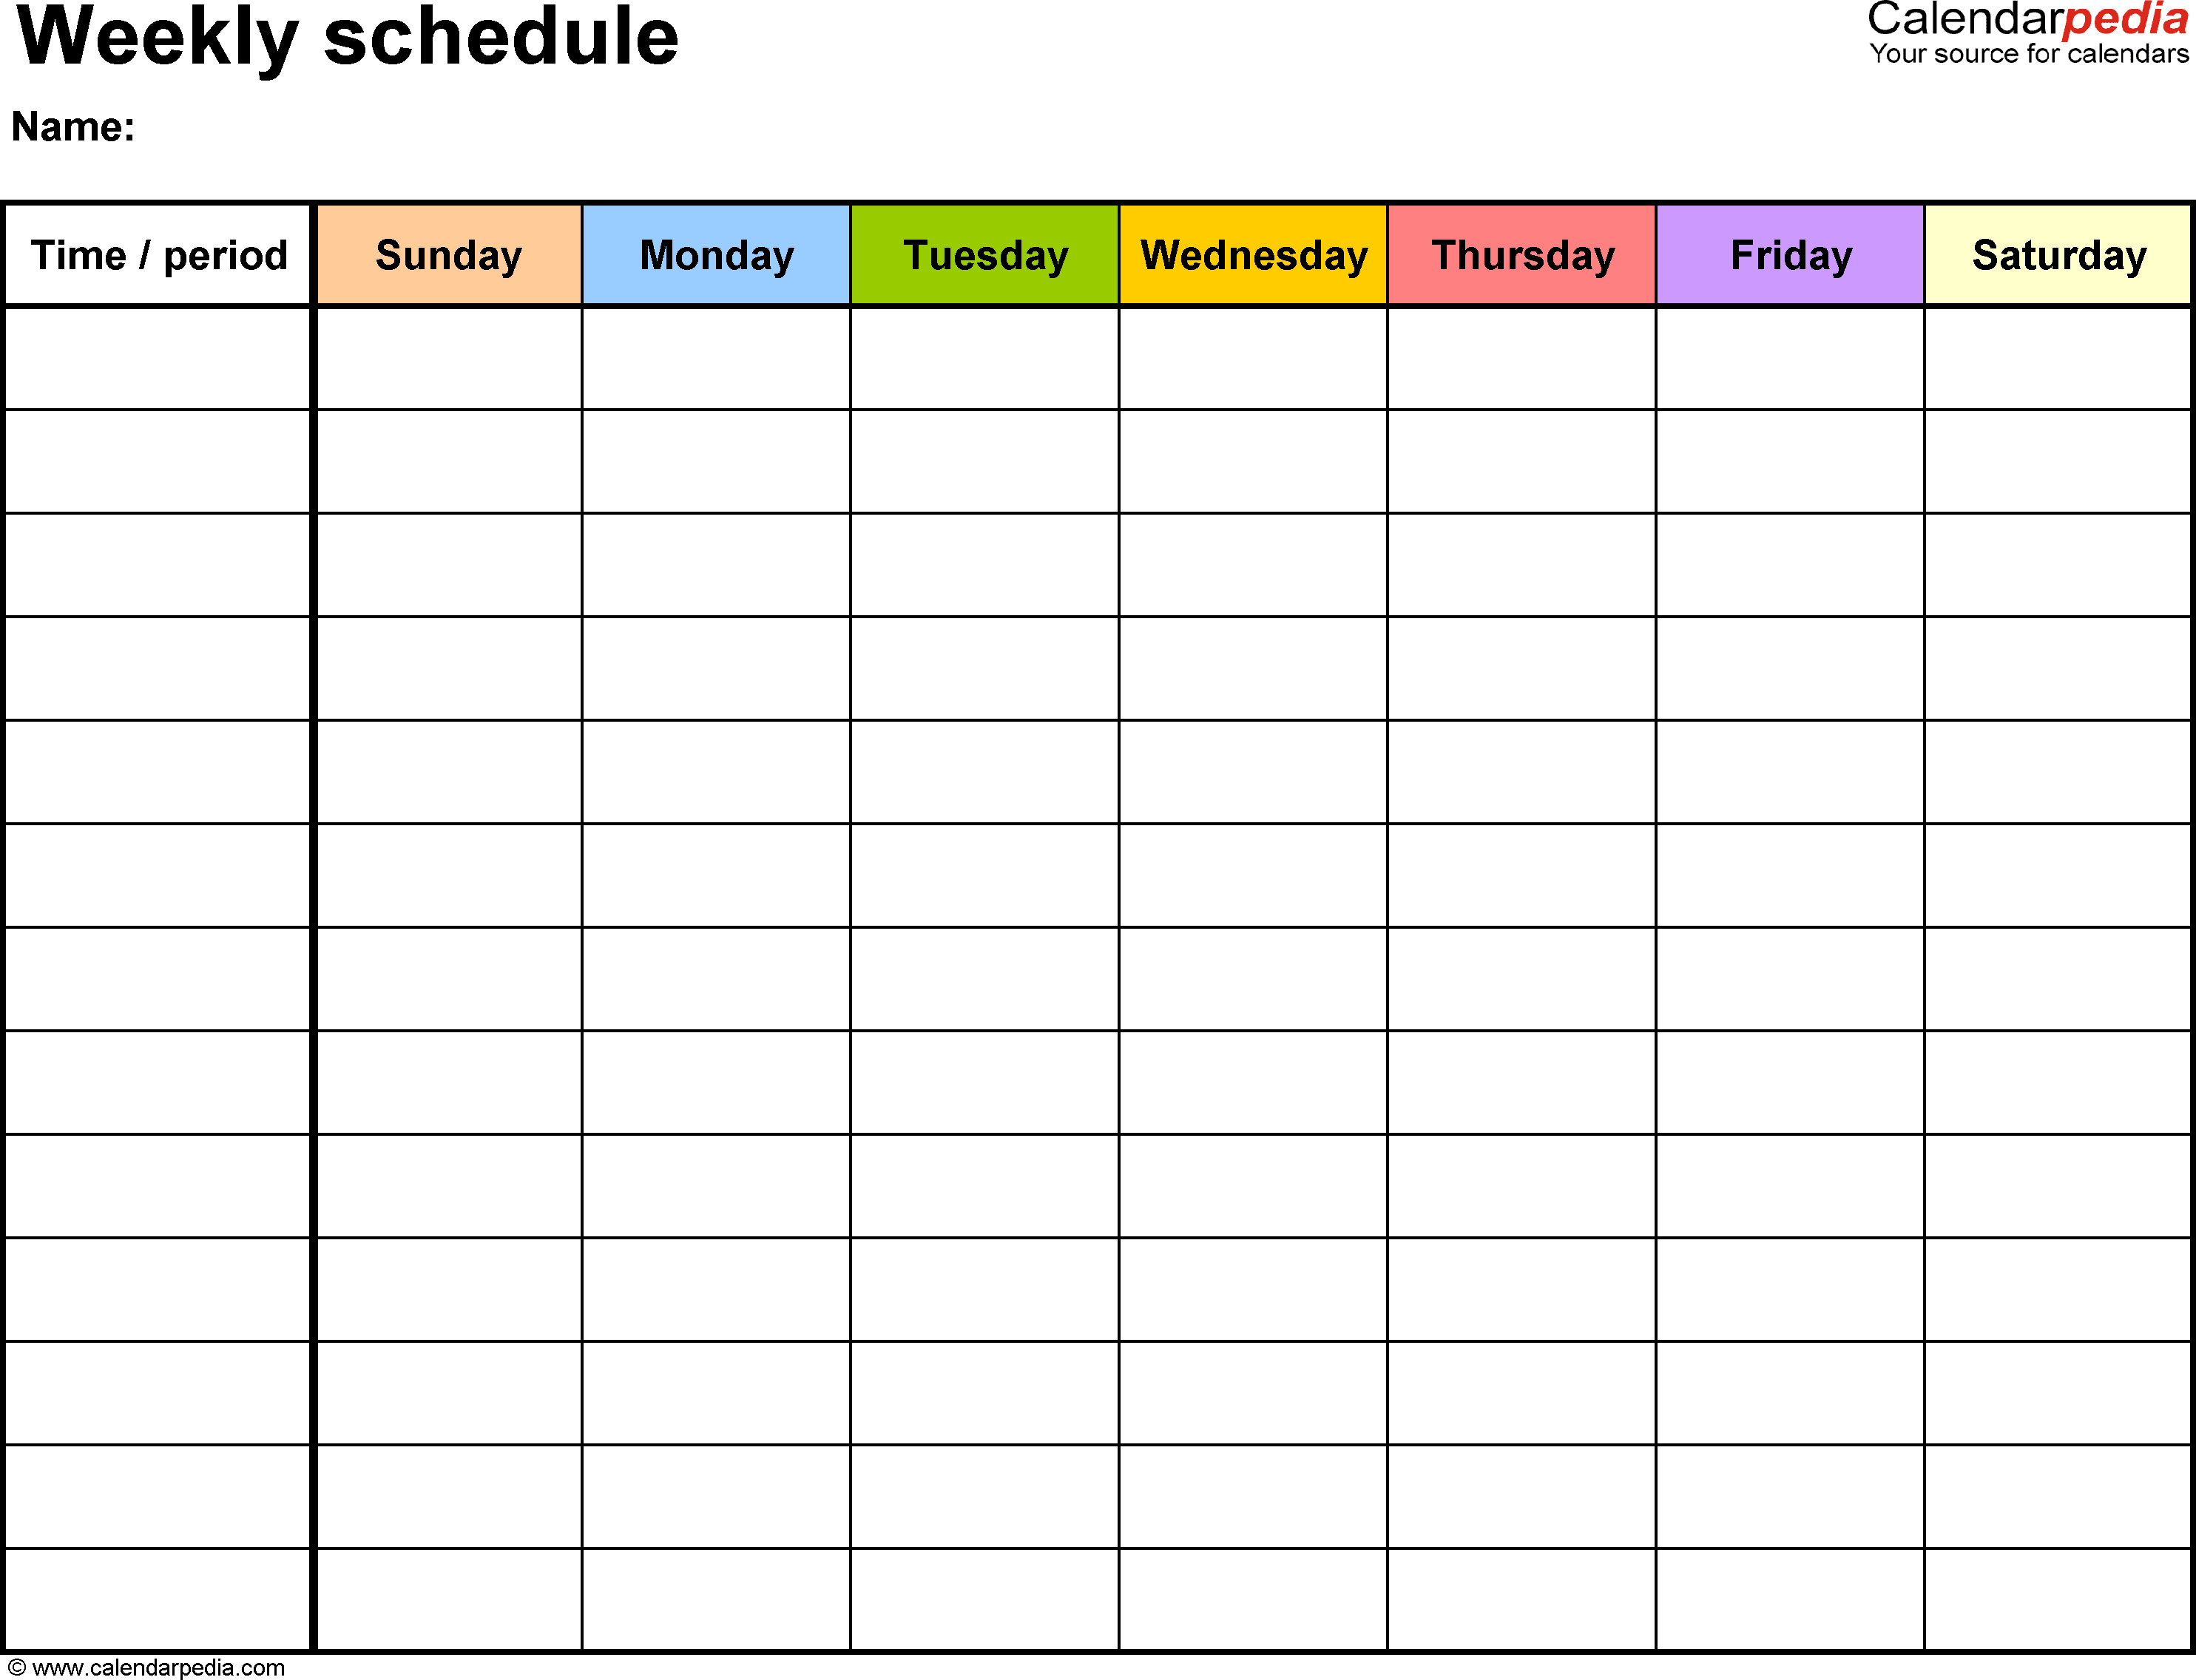 Free Weekly Schedule Templates For Excel - 18 Templates within Days Of The Week Schedules Free Template